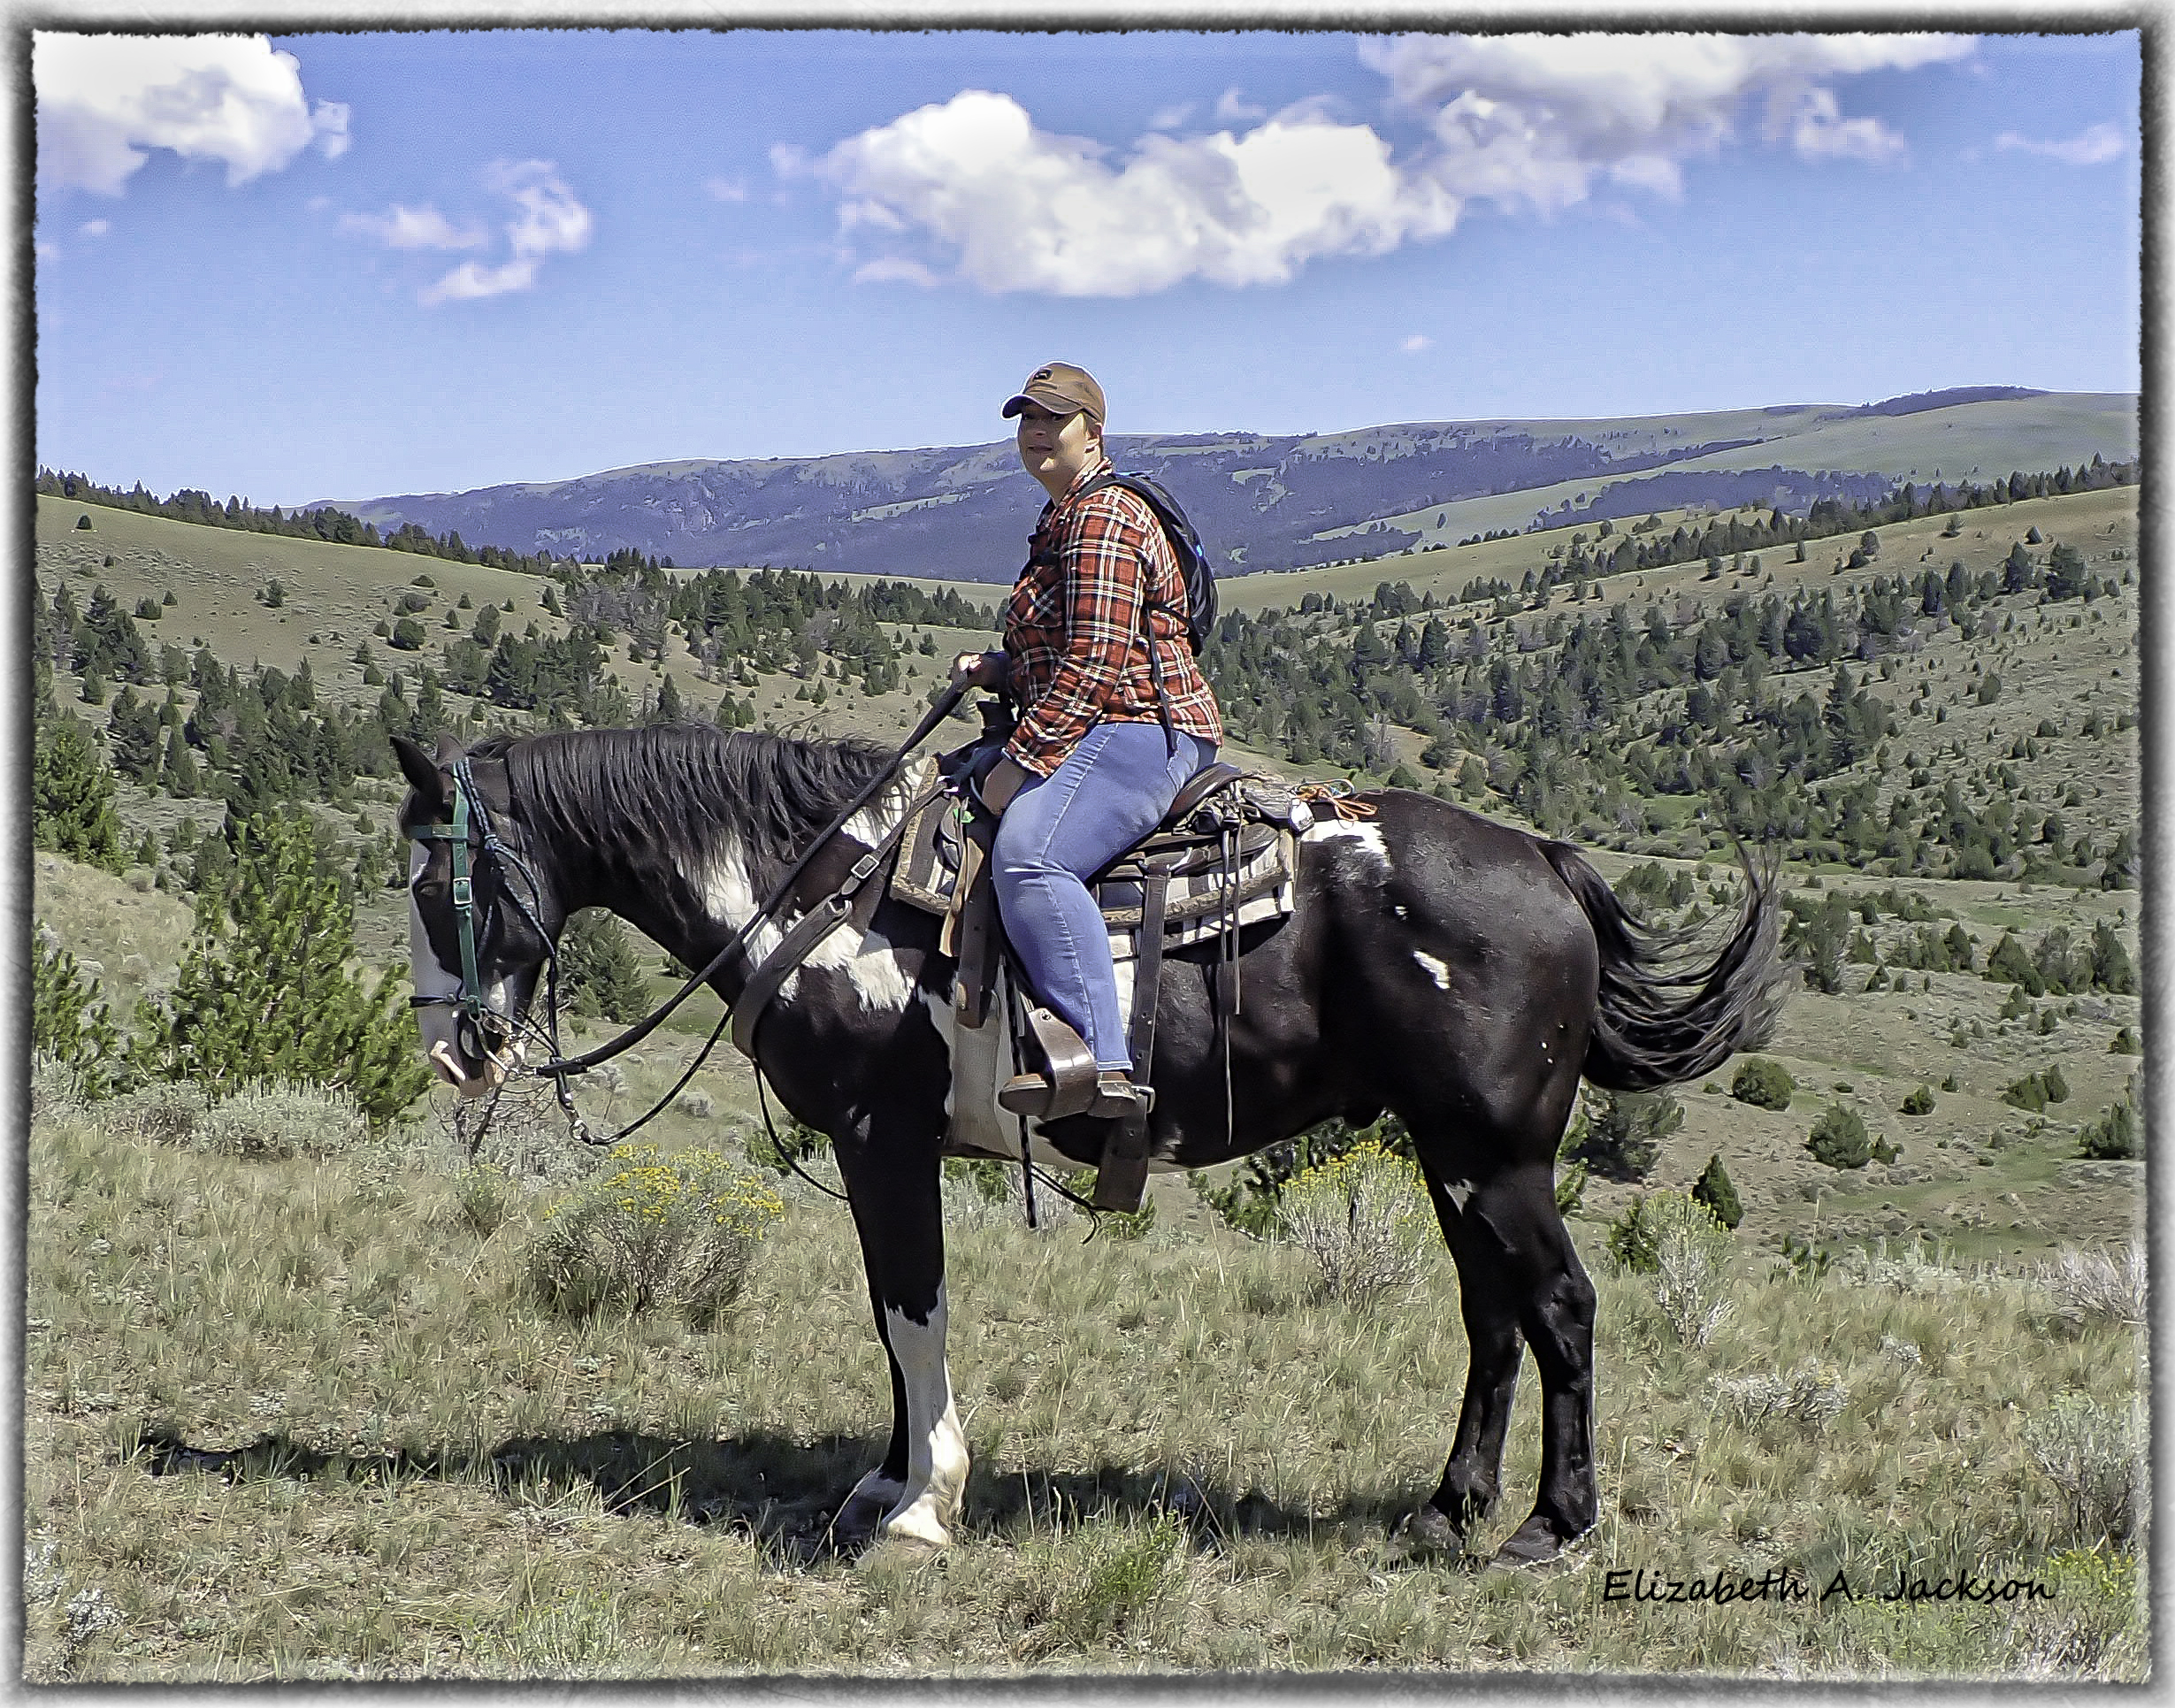 Horse back riding on your dude ranch vacation